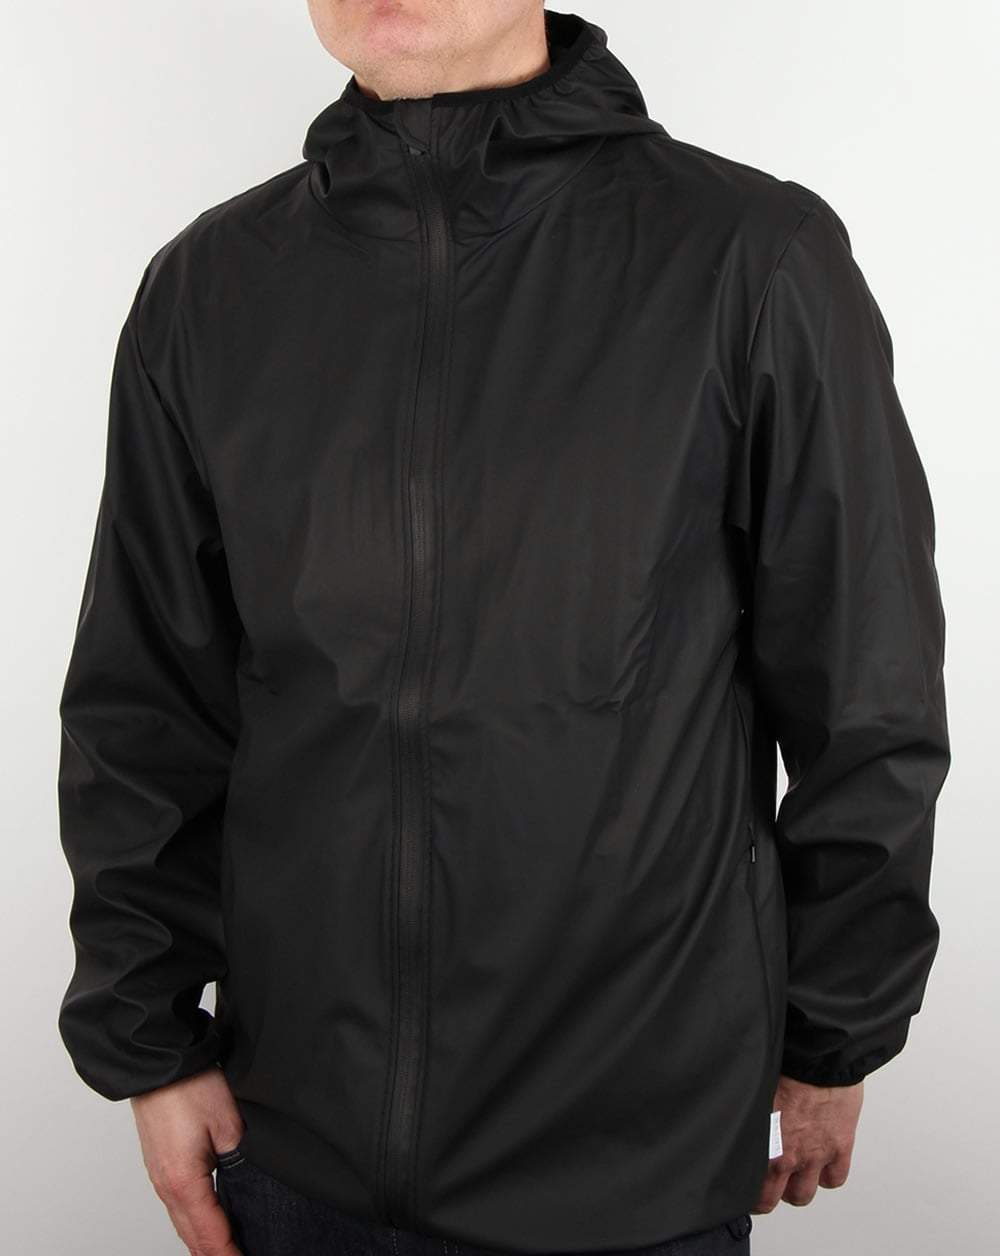 6b14f4d21c2a Black Patagonia Jacket Mens.Columbia Pike Lake Hooded Jacket Men ...